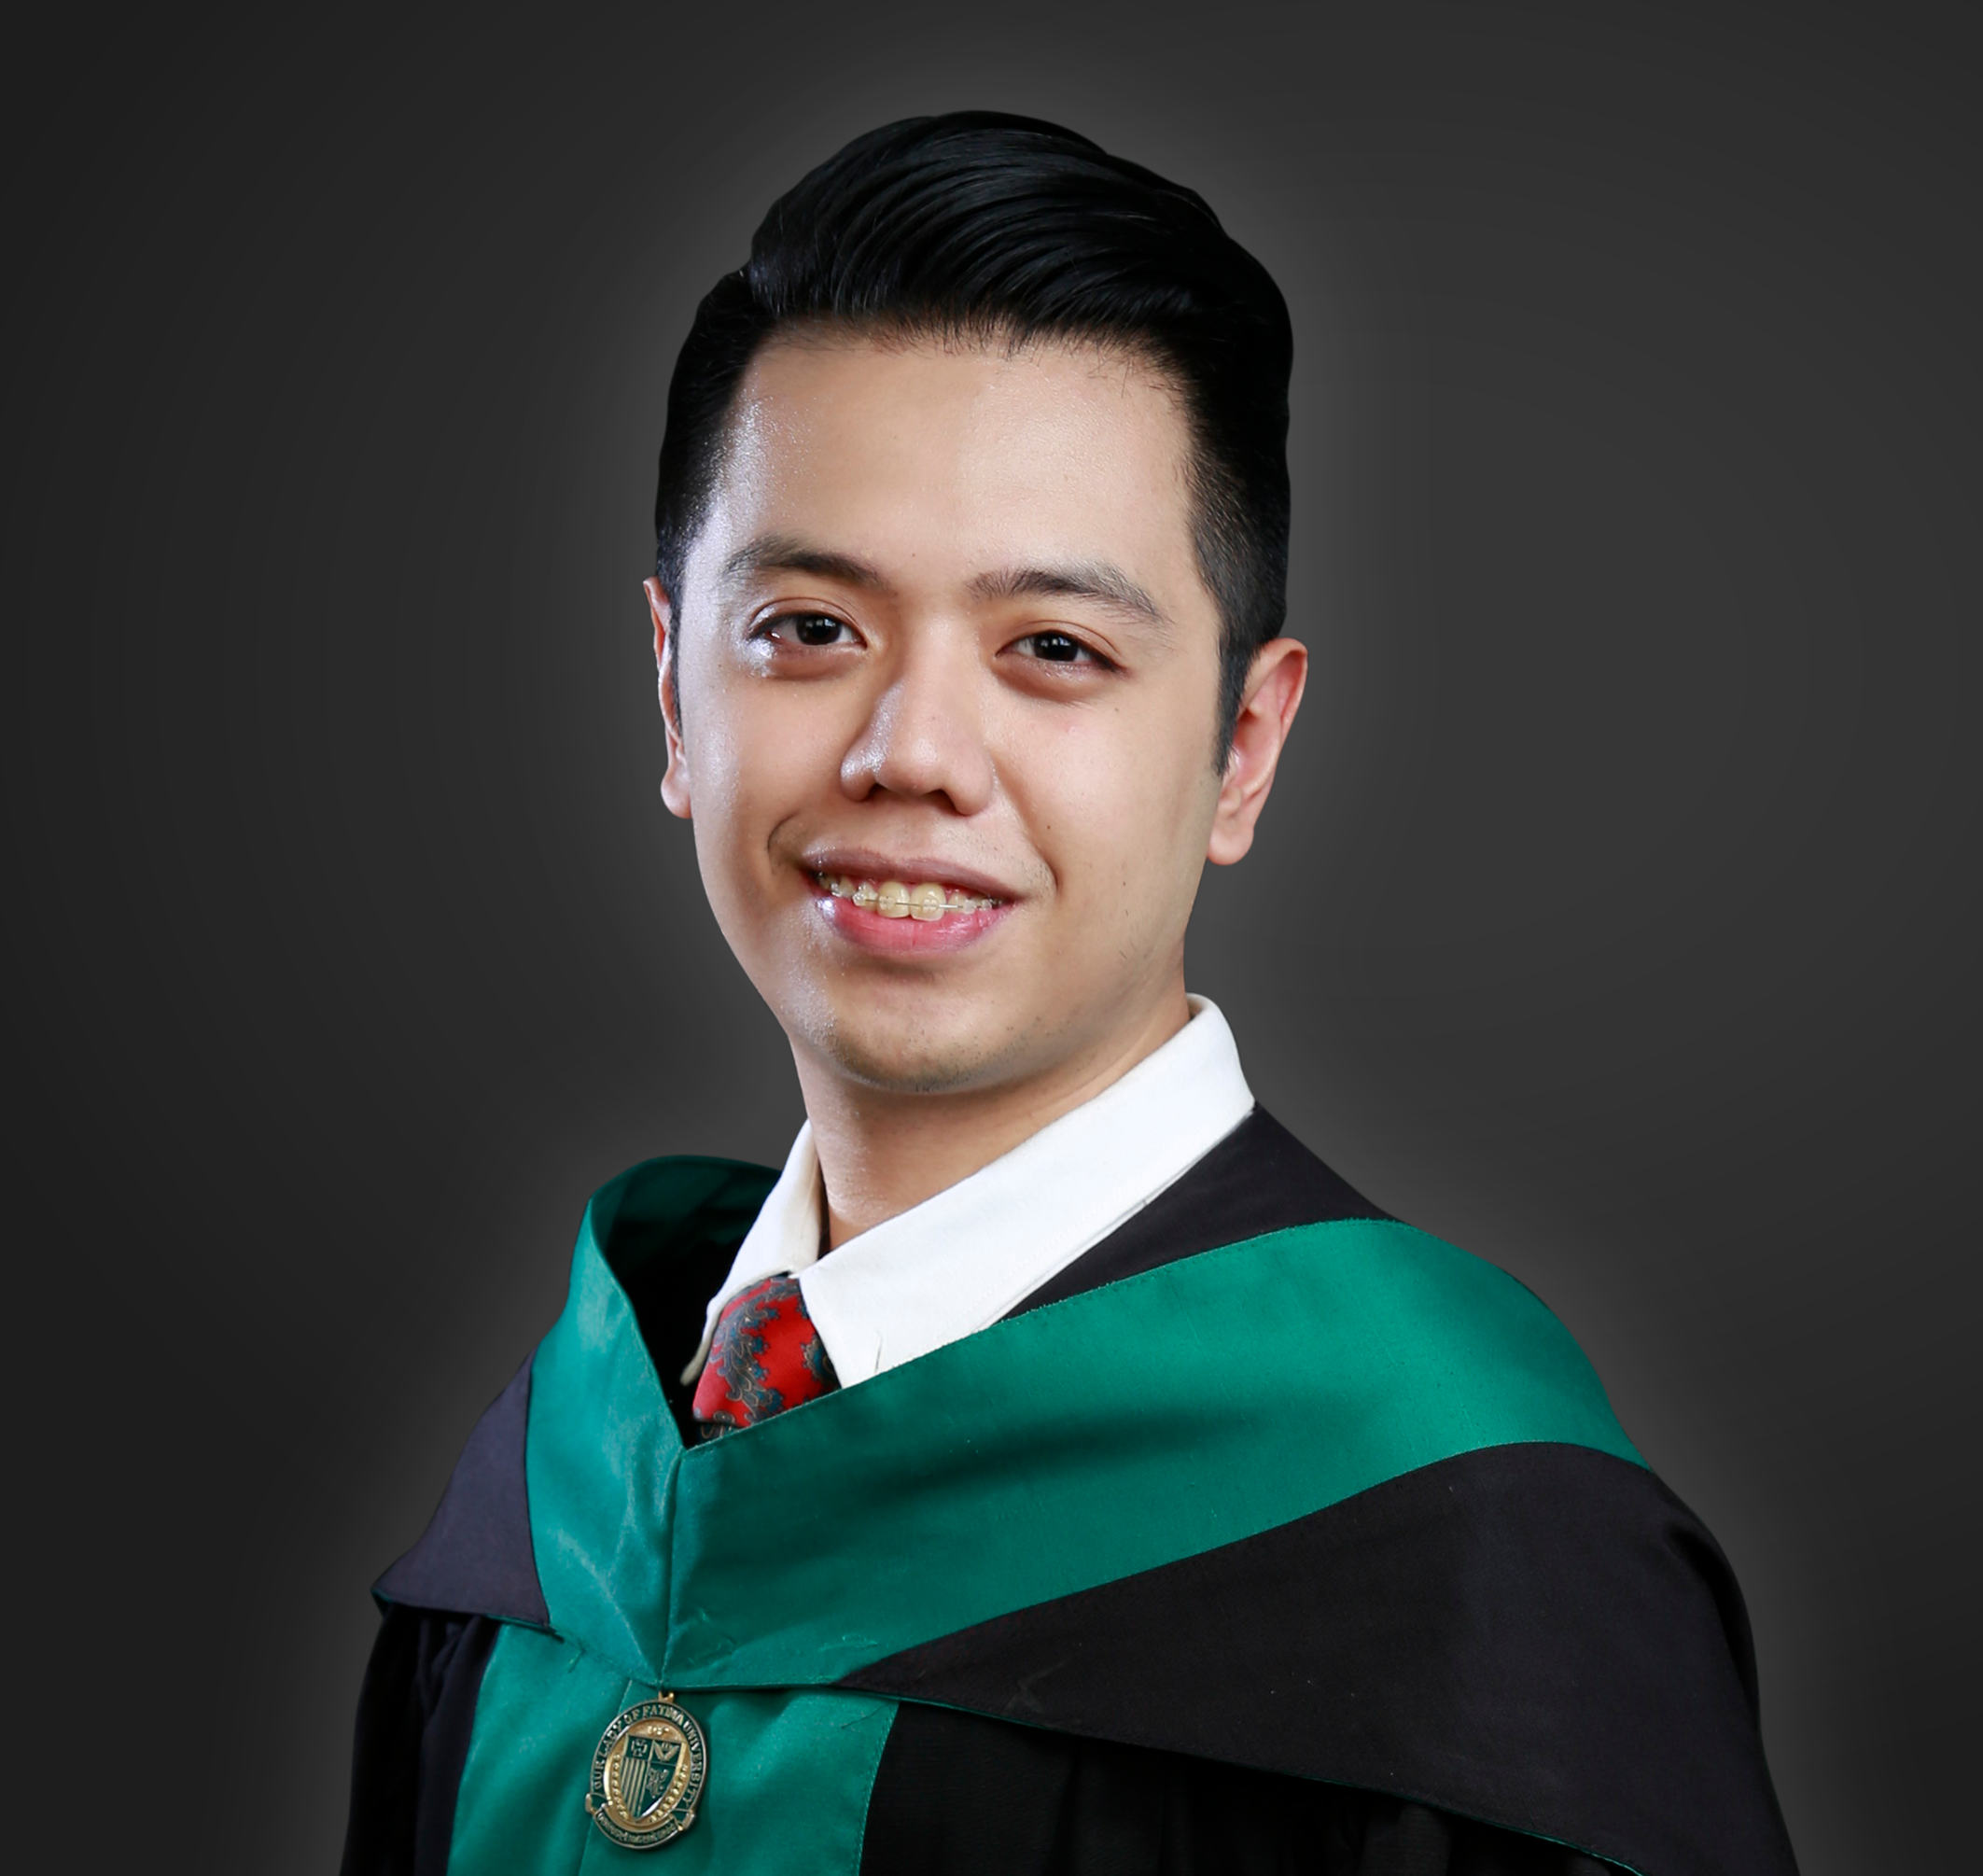 Top 2 – March 2019 Physician Licensure Exam